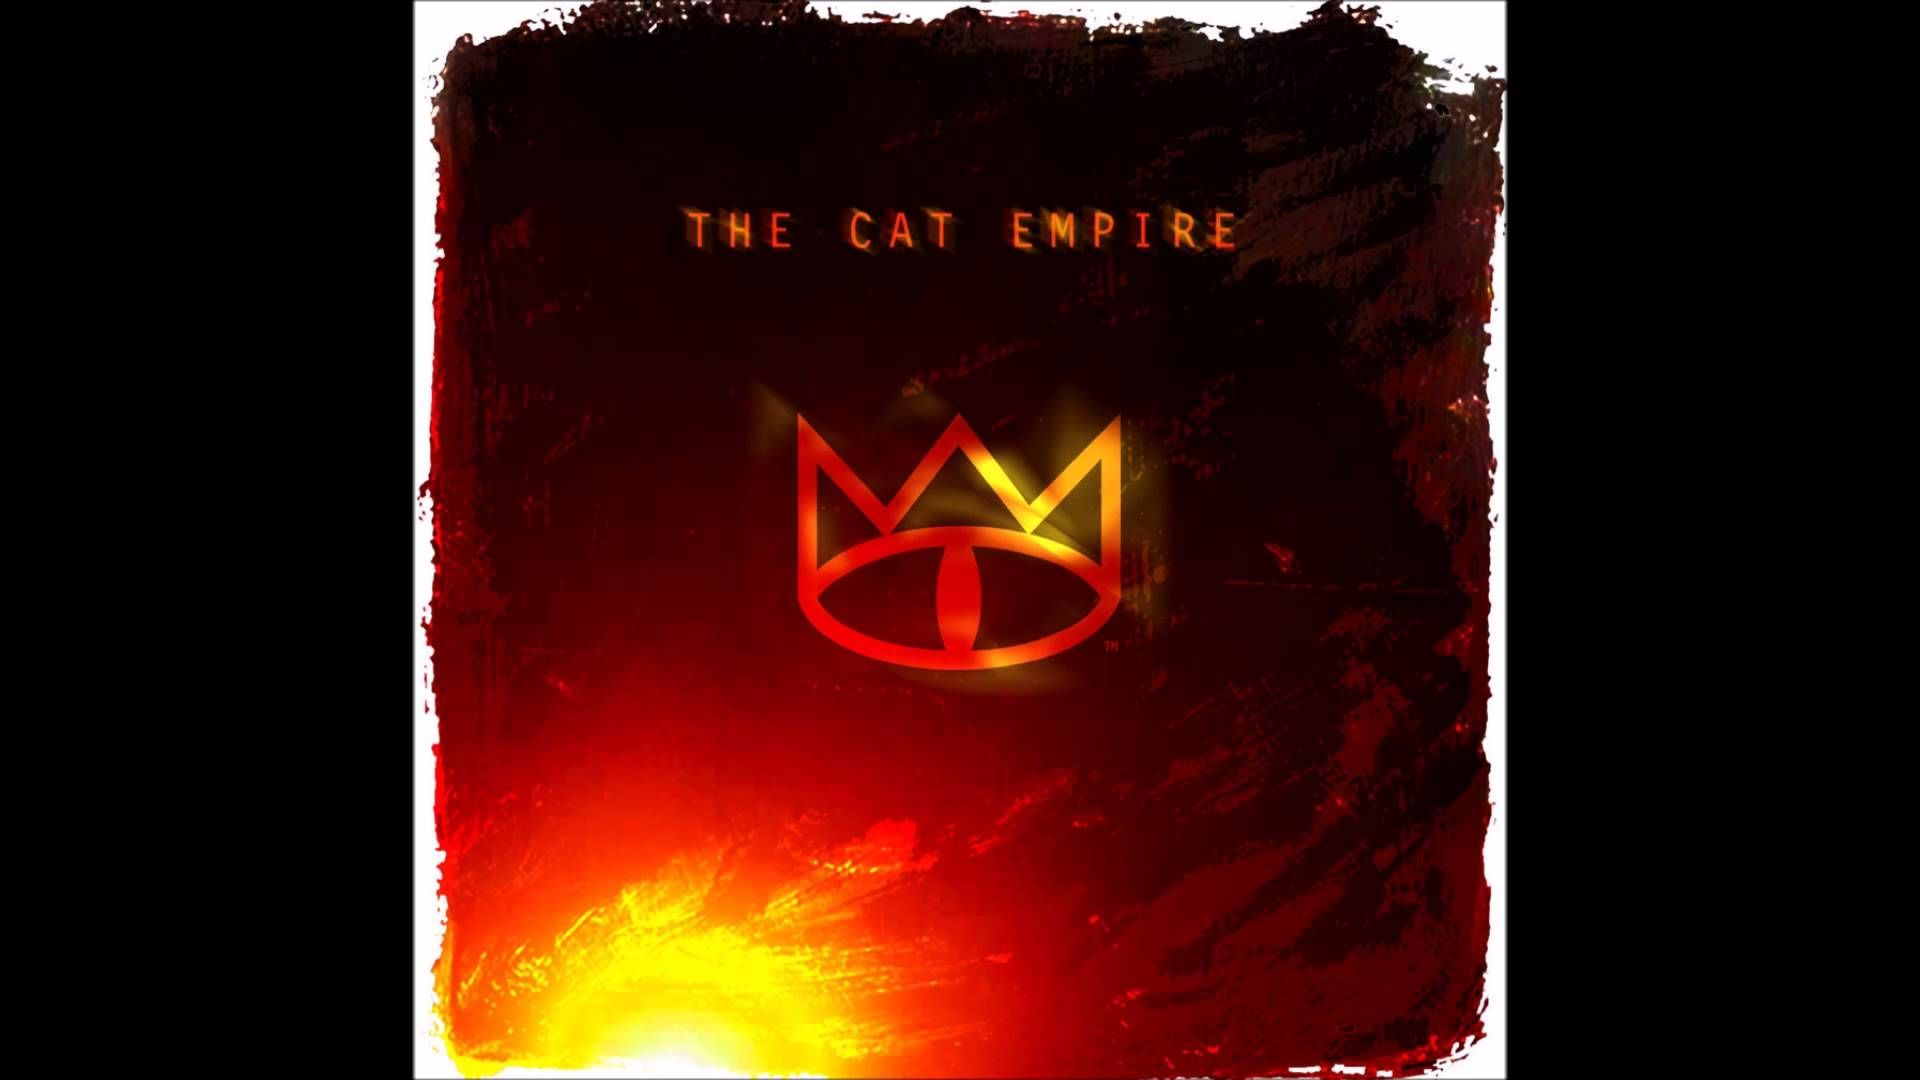 7528 - ¿Cuánto sabes de The Cat Empire?